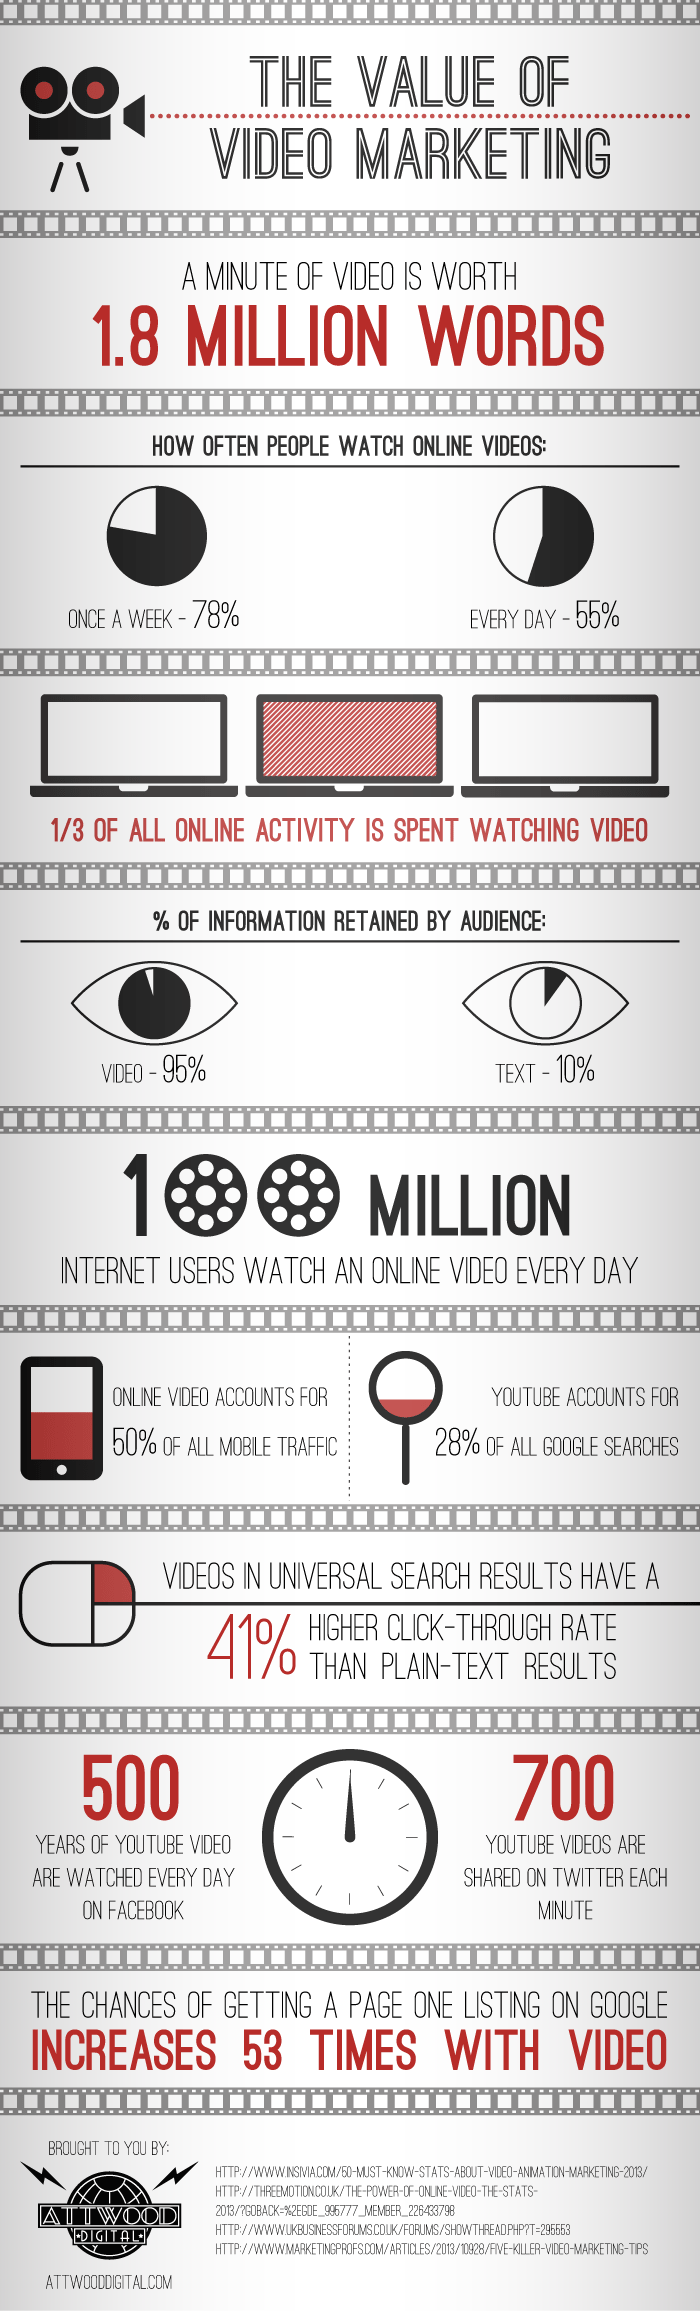 the value of video marketing from attwooddigital.com